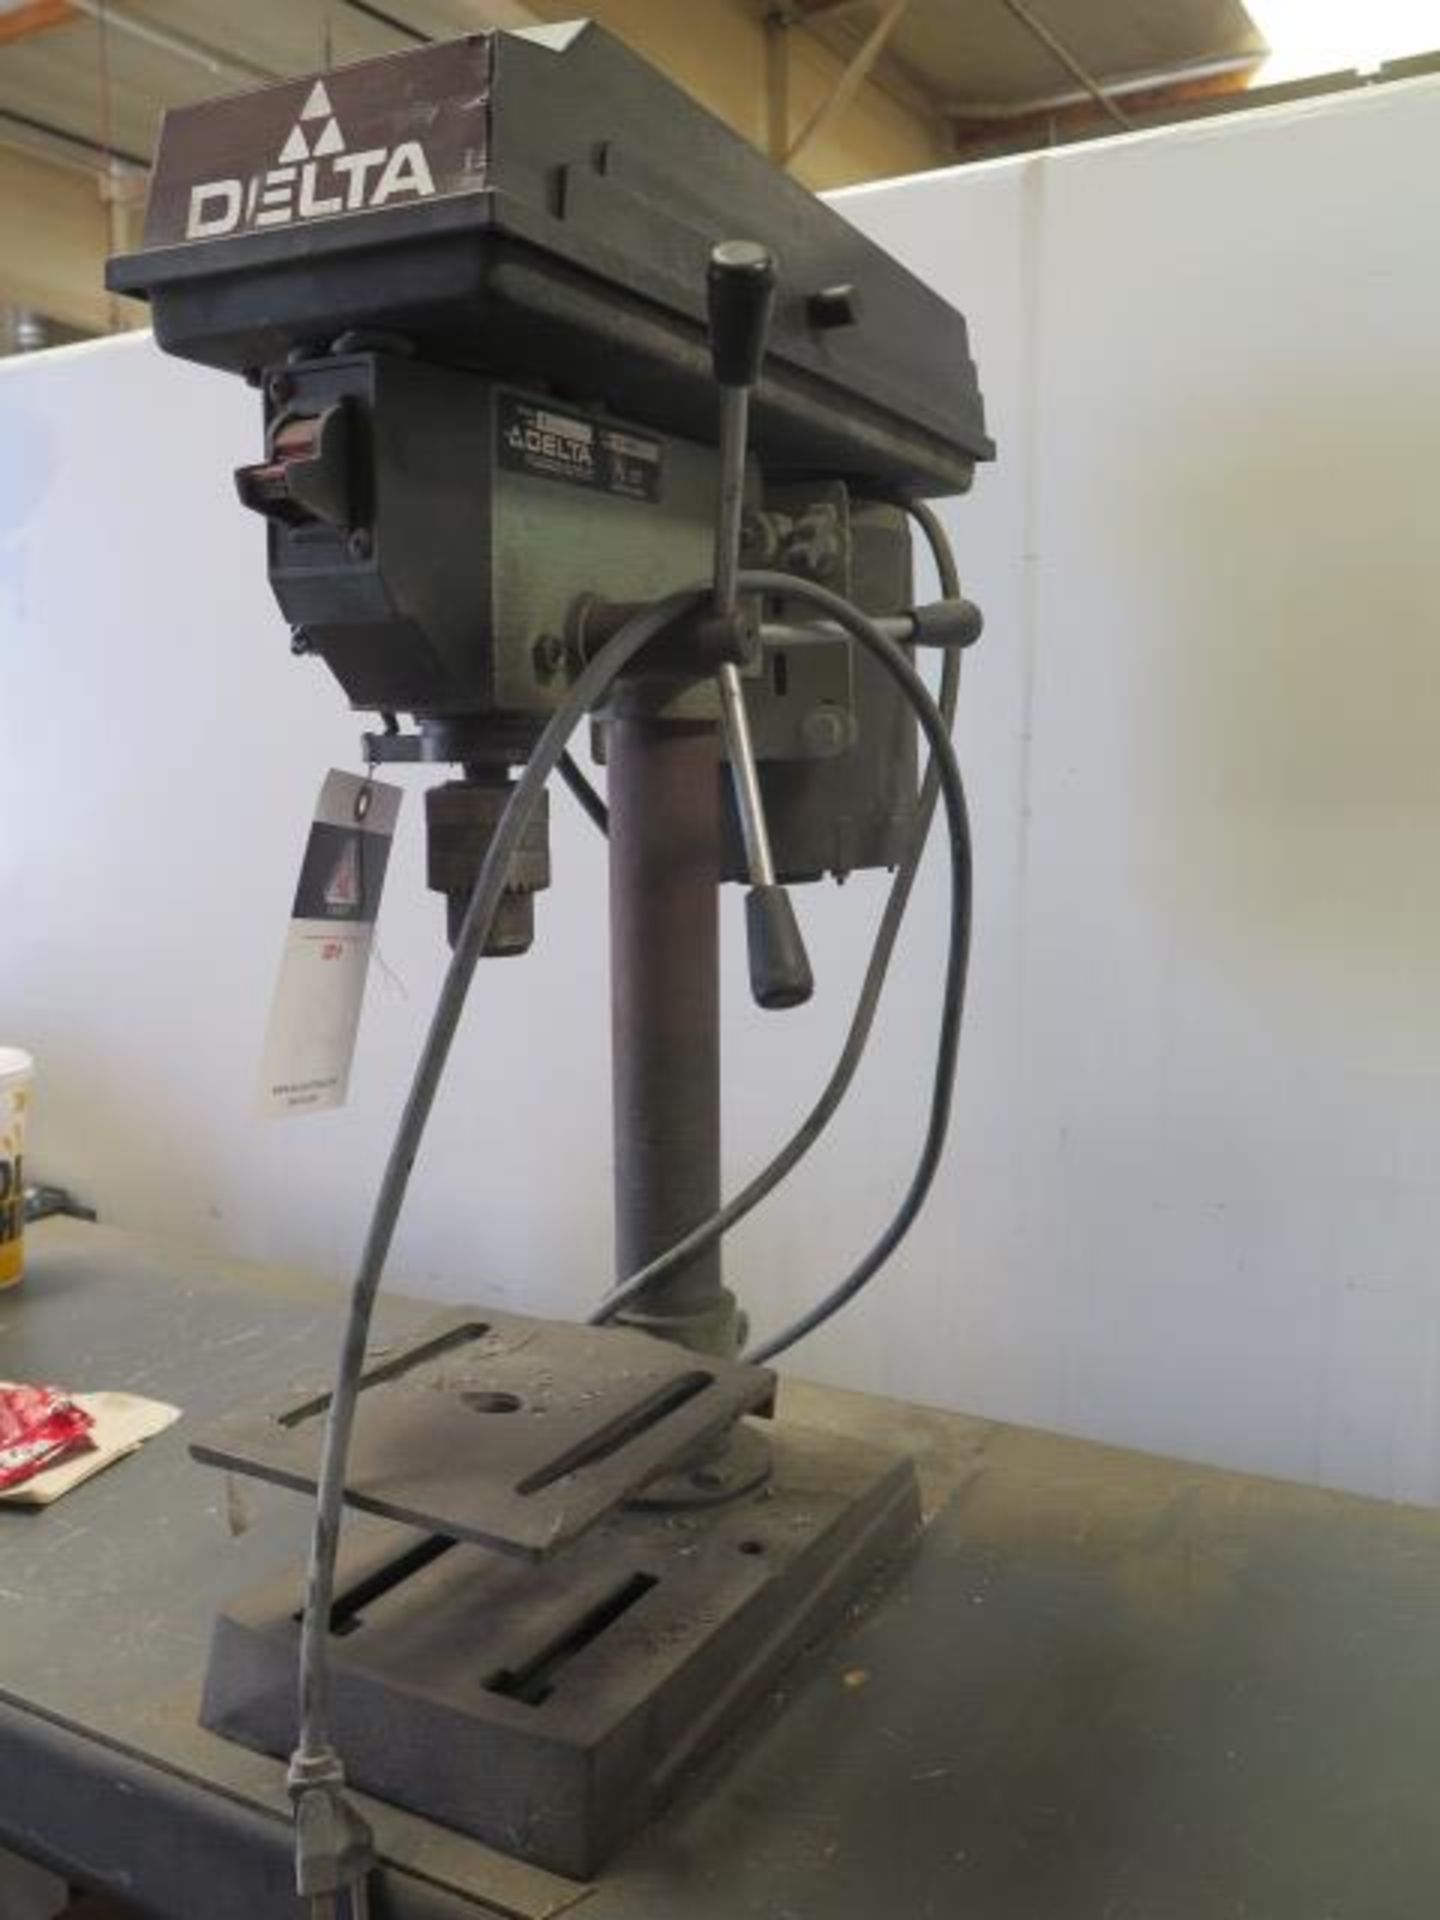 Delta Table Model Drill Press (SOLD AS-IS - NO WARRANTY) - Image 2 of 6